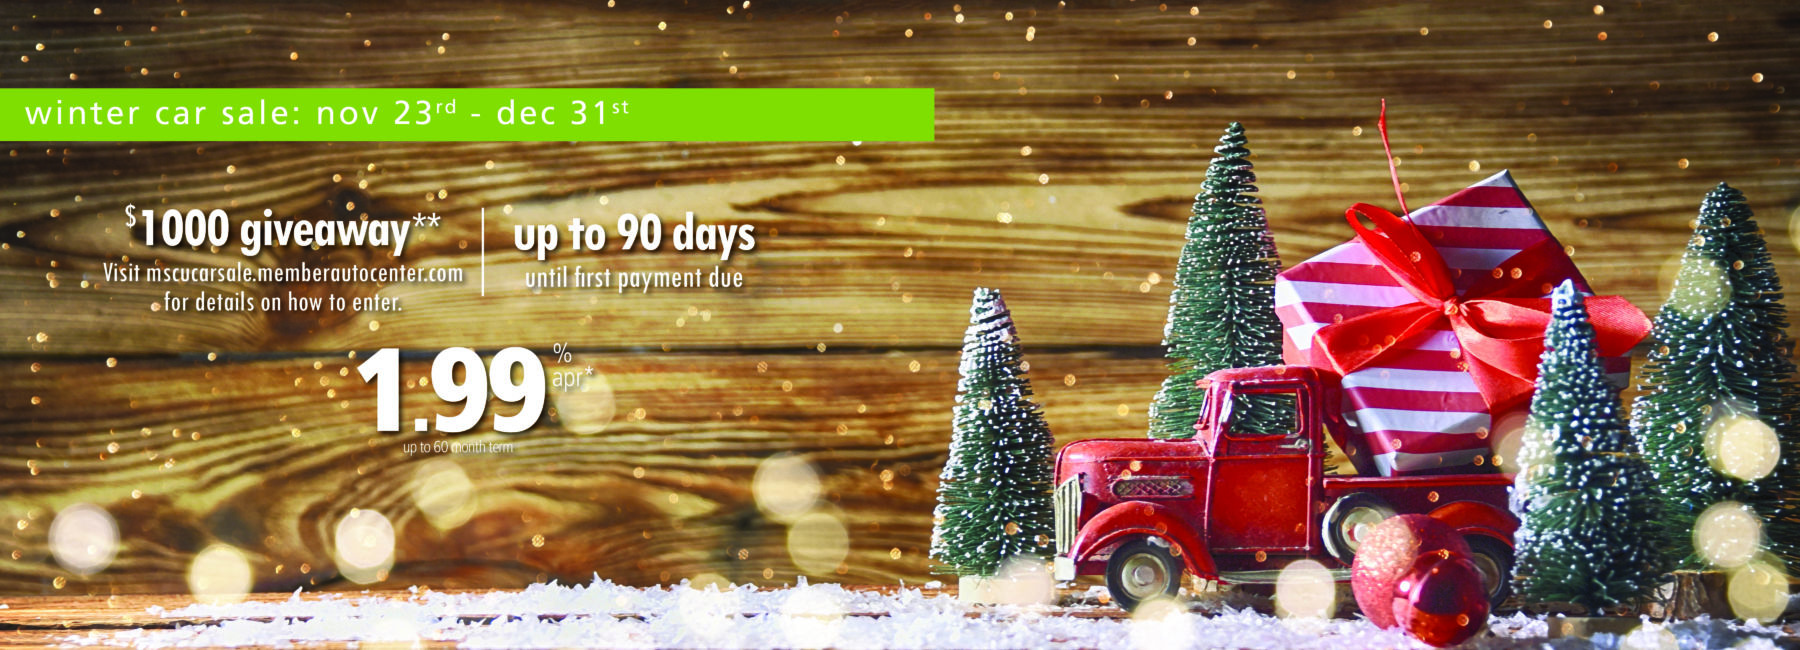 Holiday image with trees, vintage truck and gift